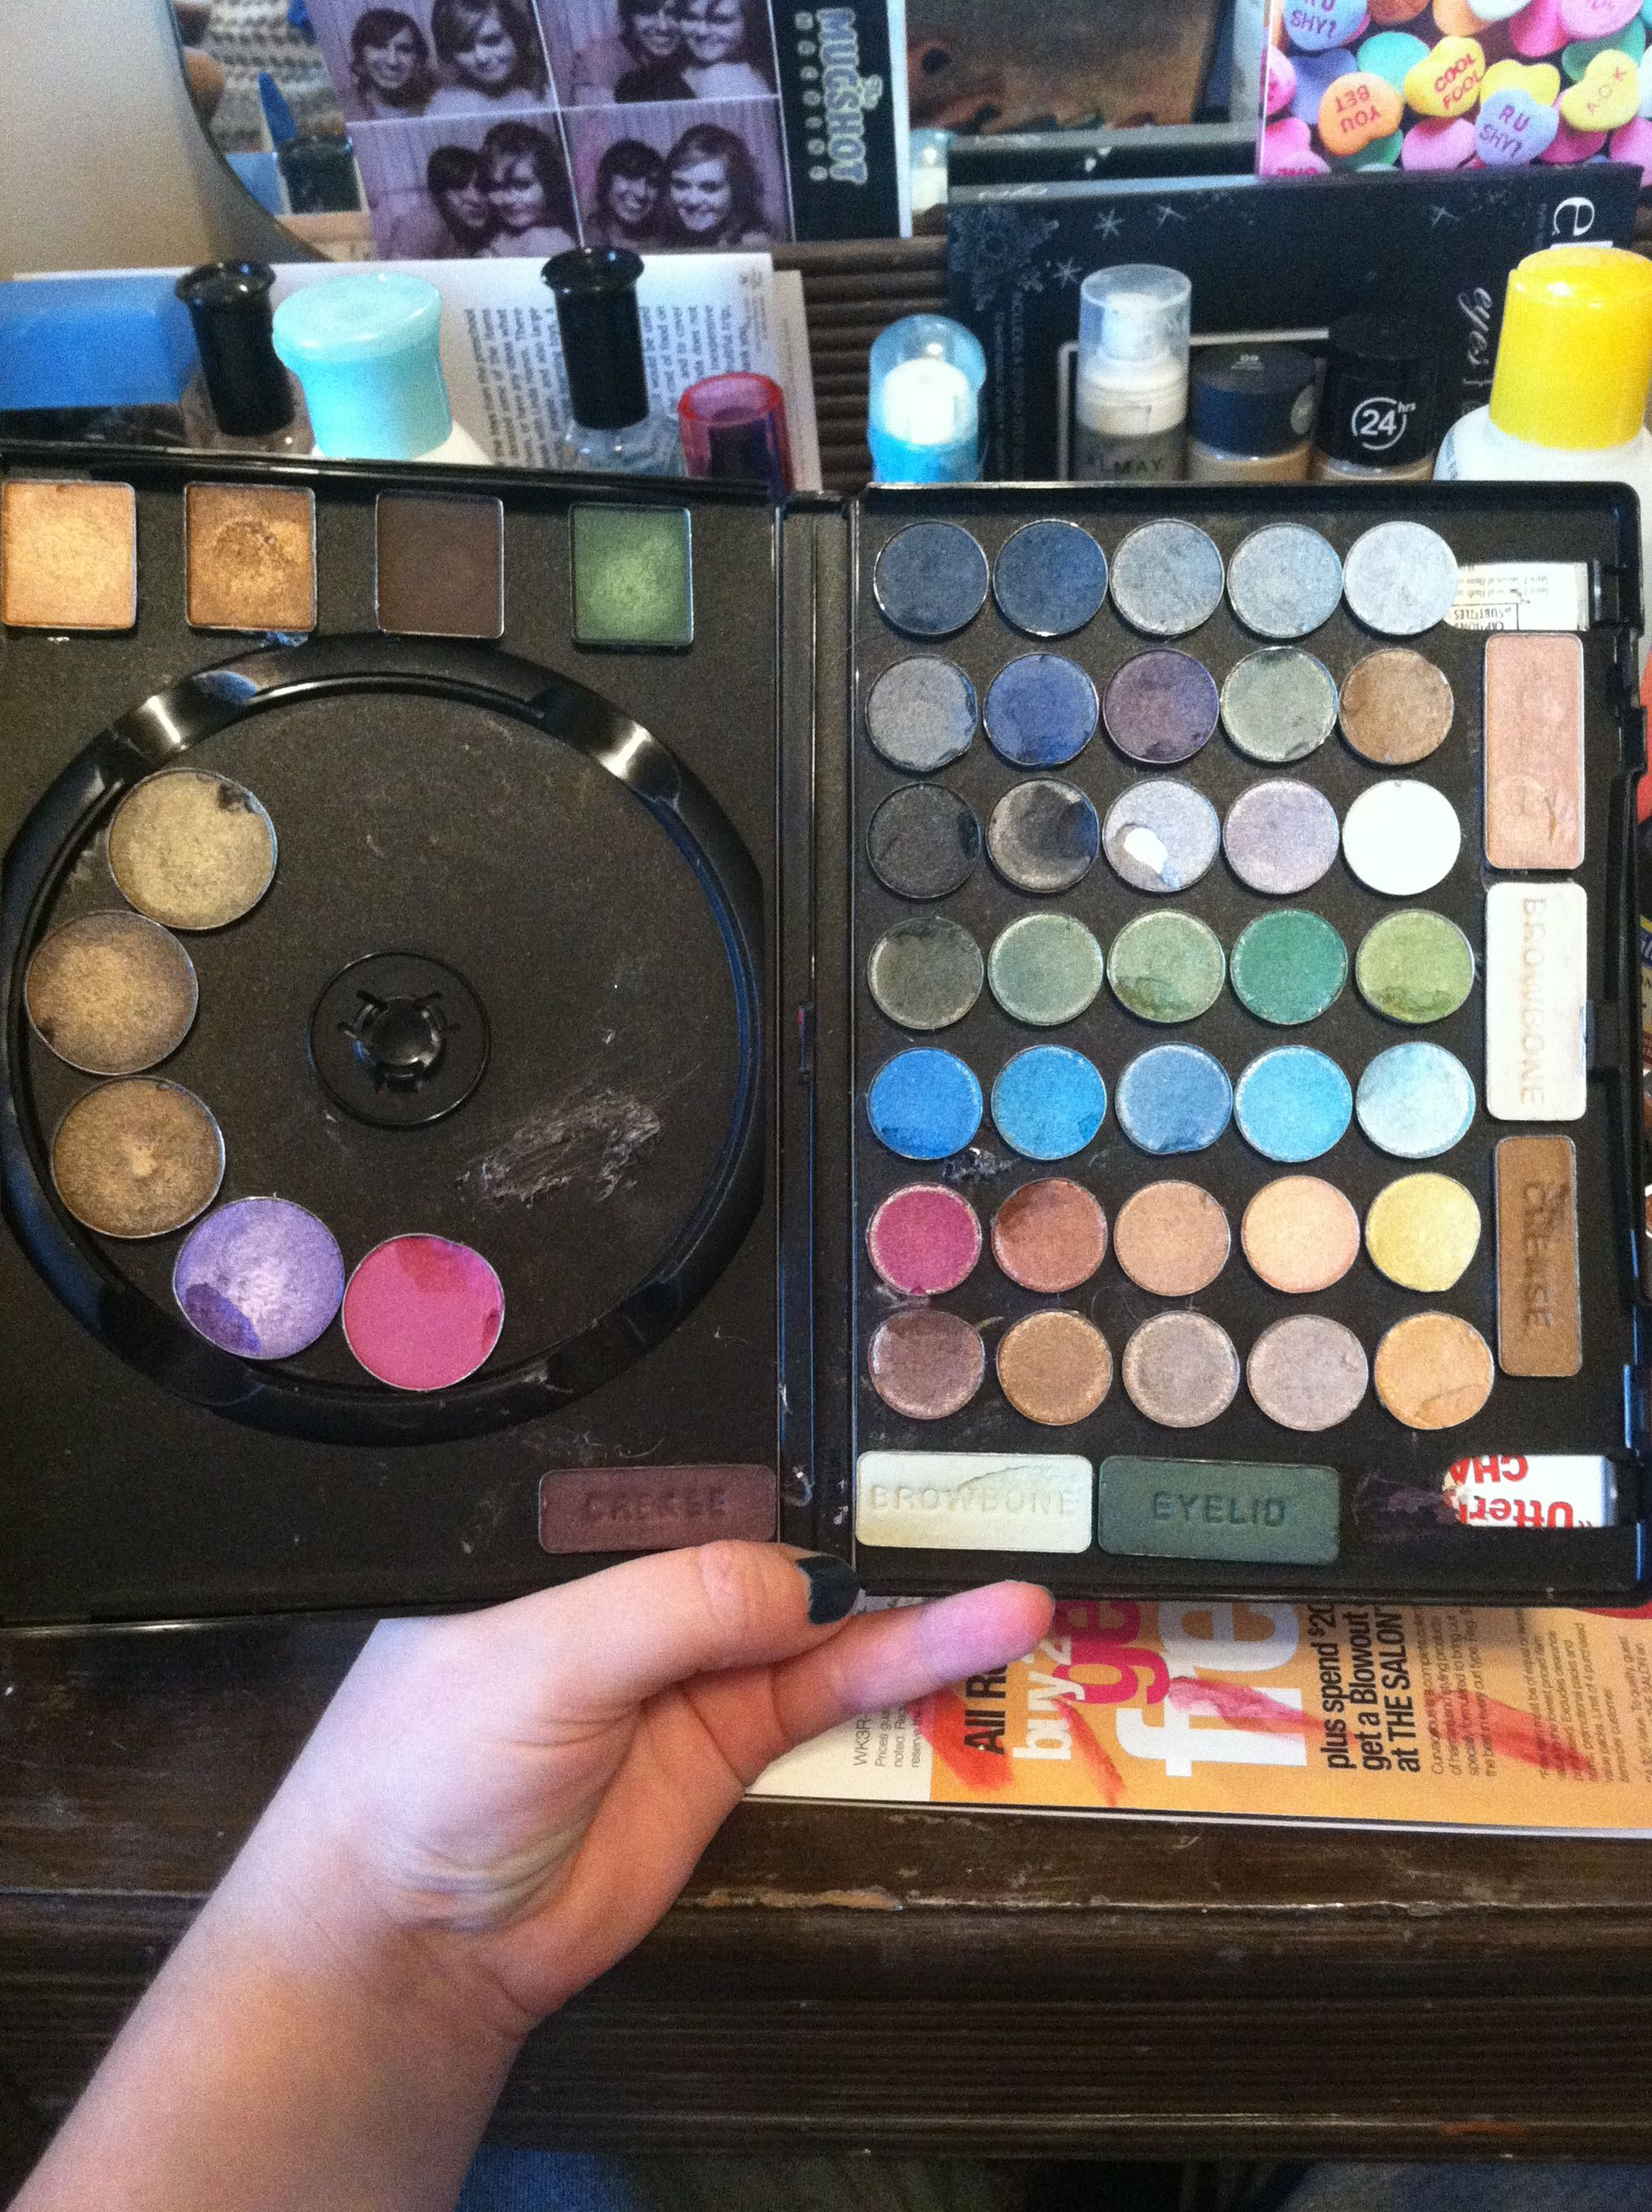 Homemade eyeshadow palette using old DVD case